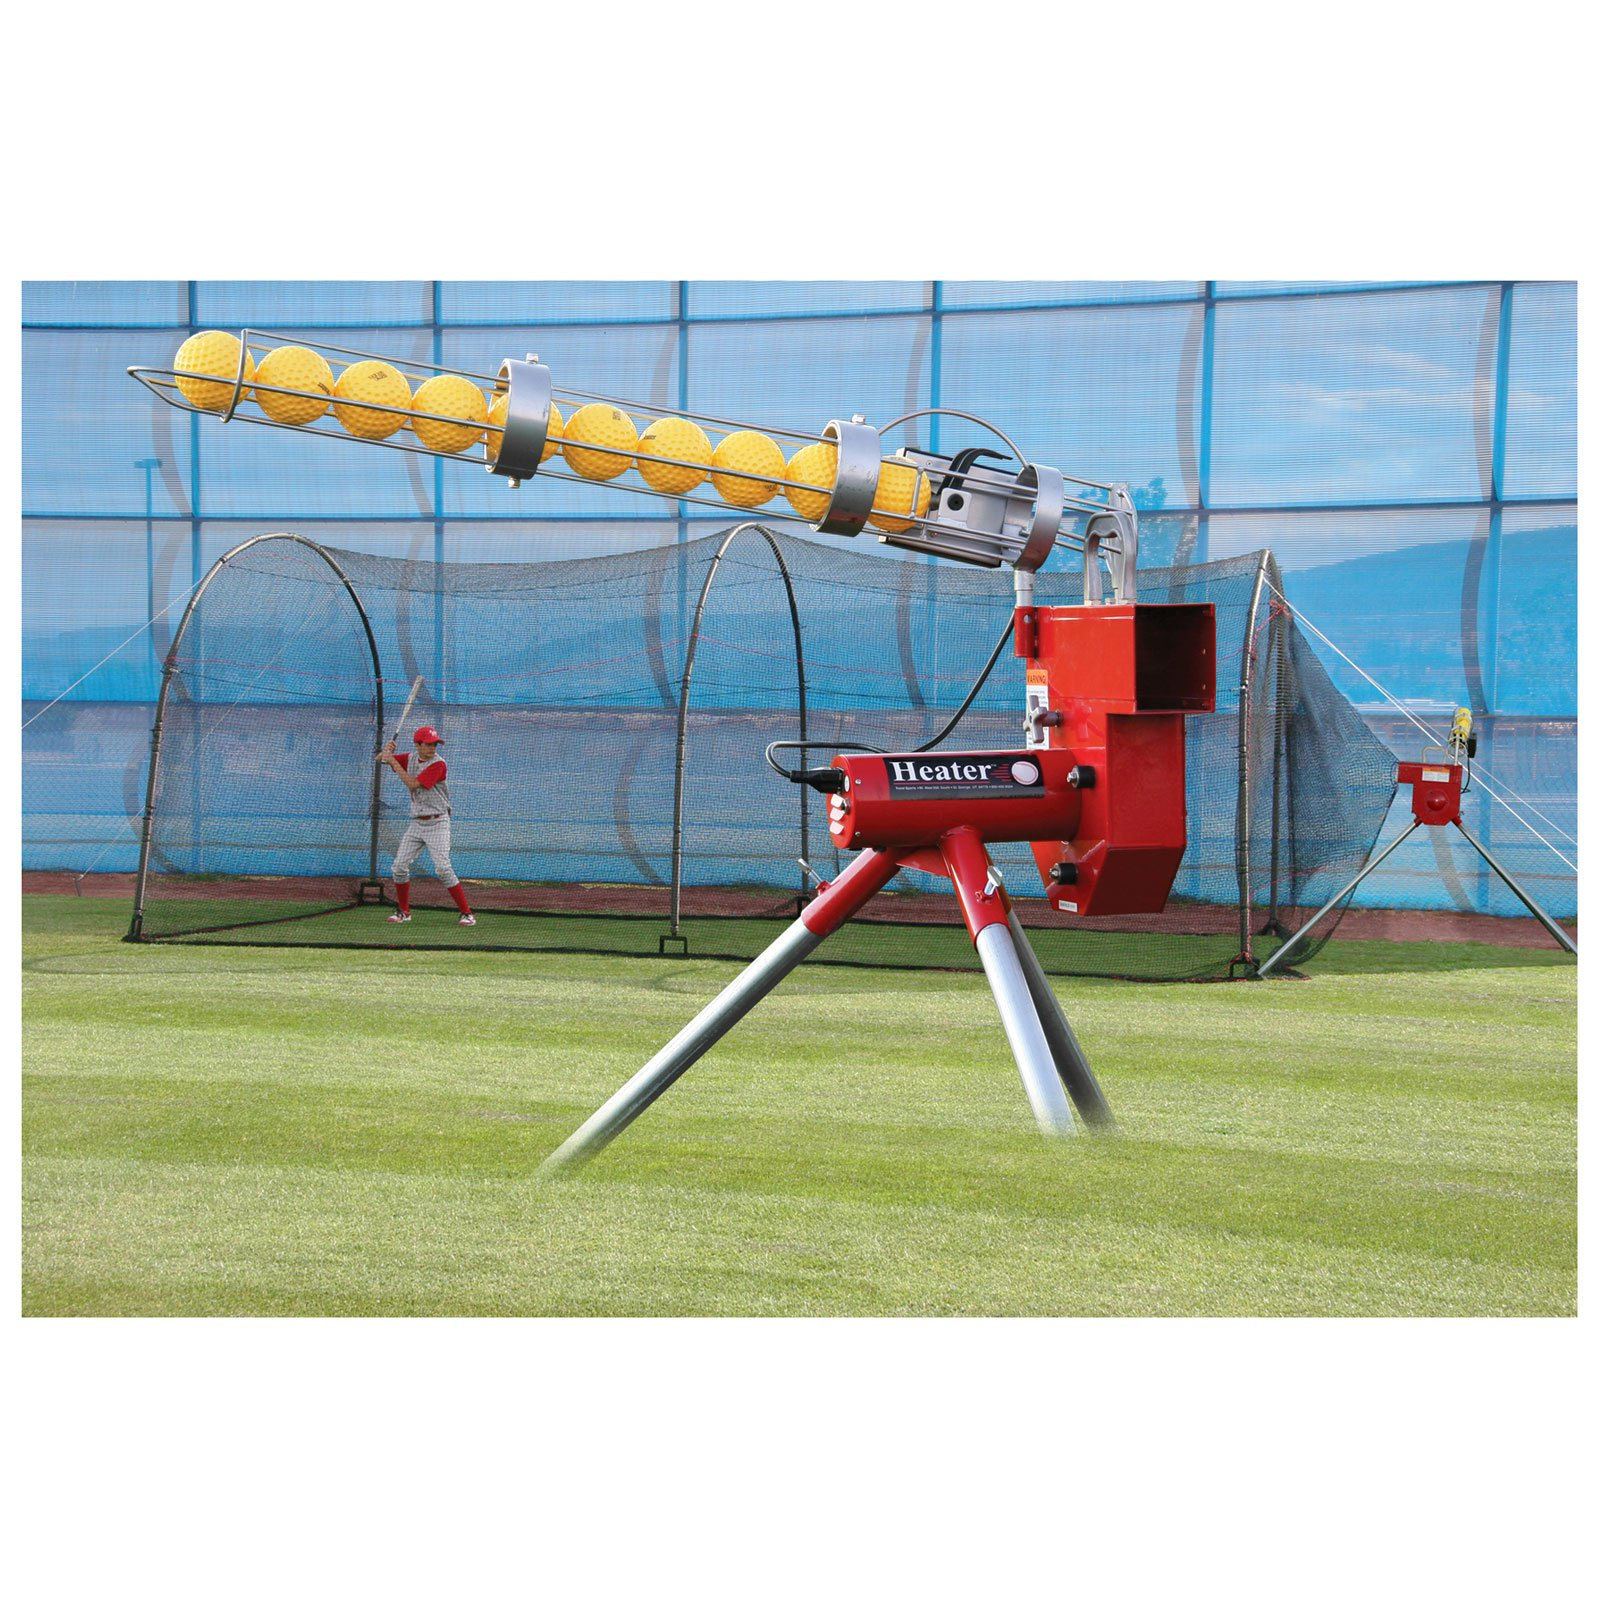 Heater Sports 24 ft. Baseball Pitching Machine & Xtender Batting Cage Package